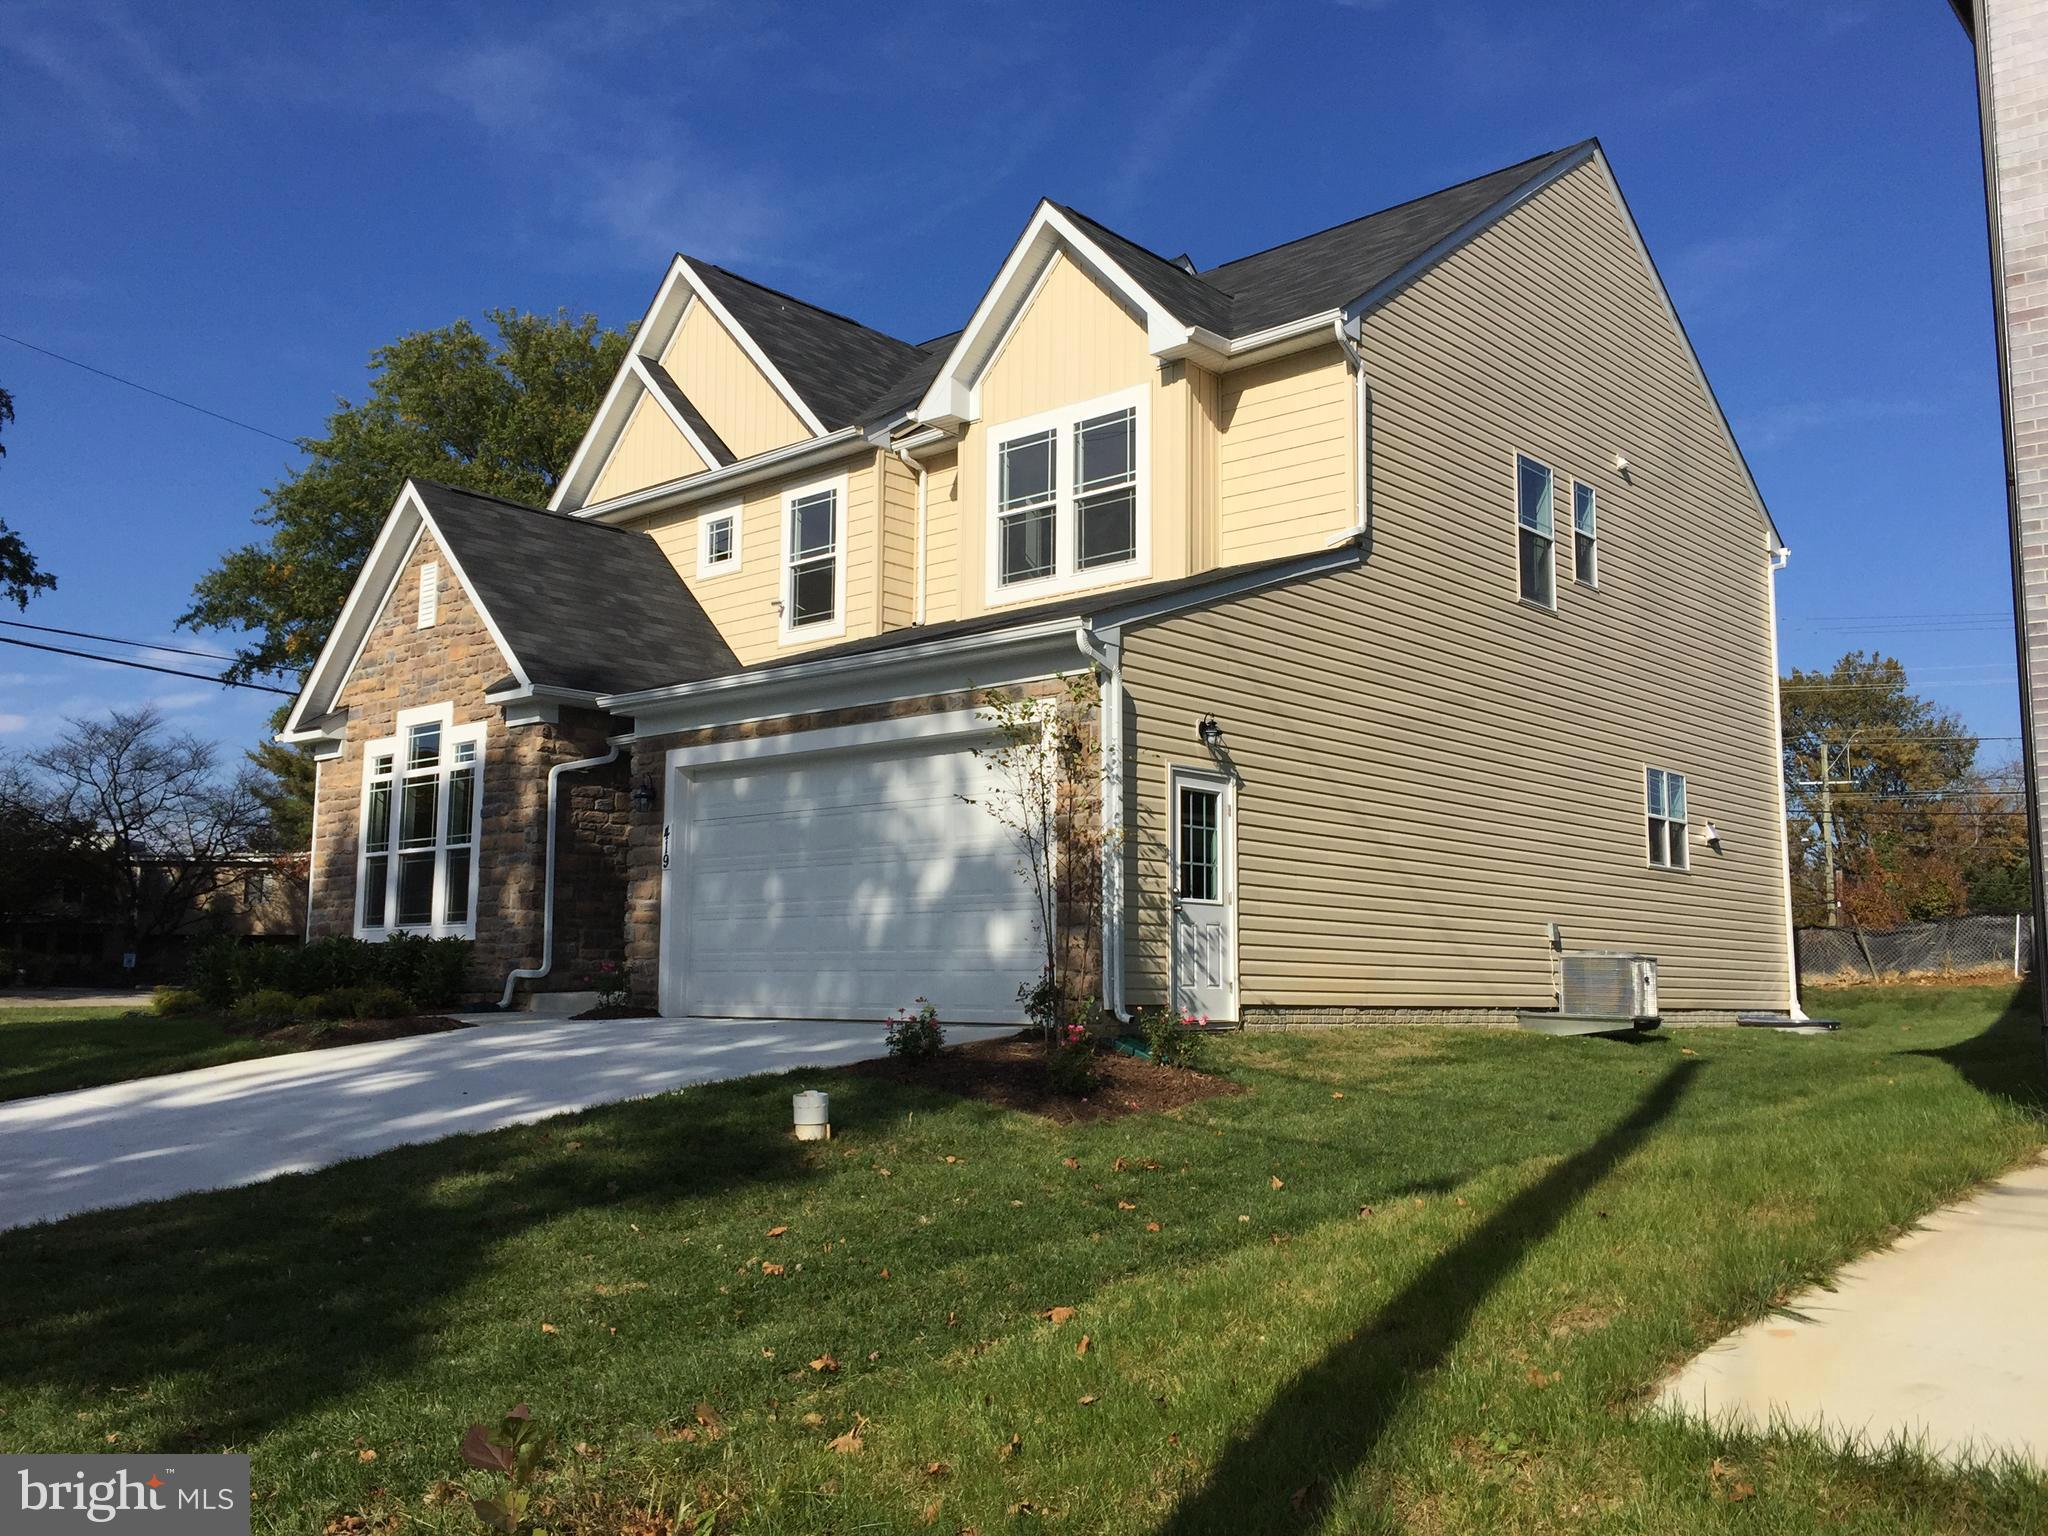 419 GILMOURE DRIVE, SILVER SPRING, MD 20901